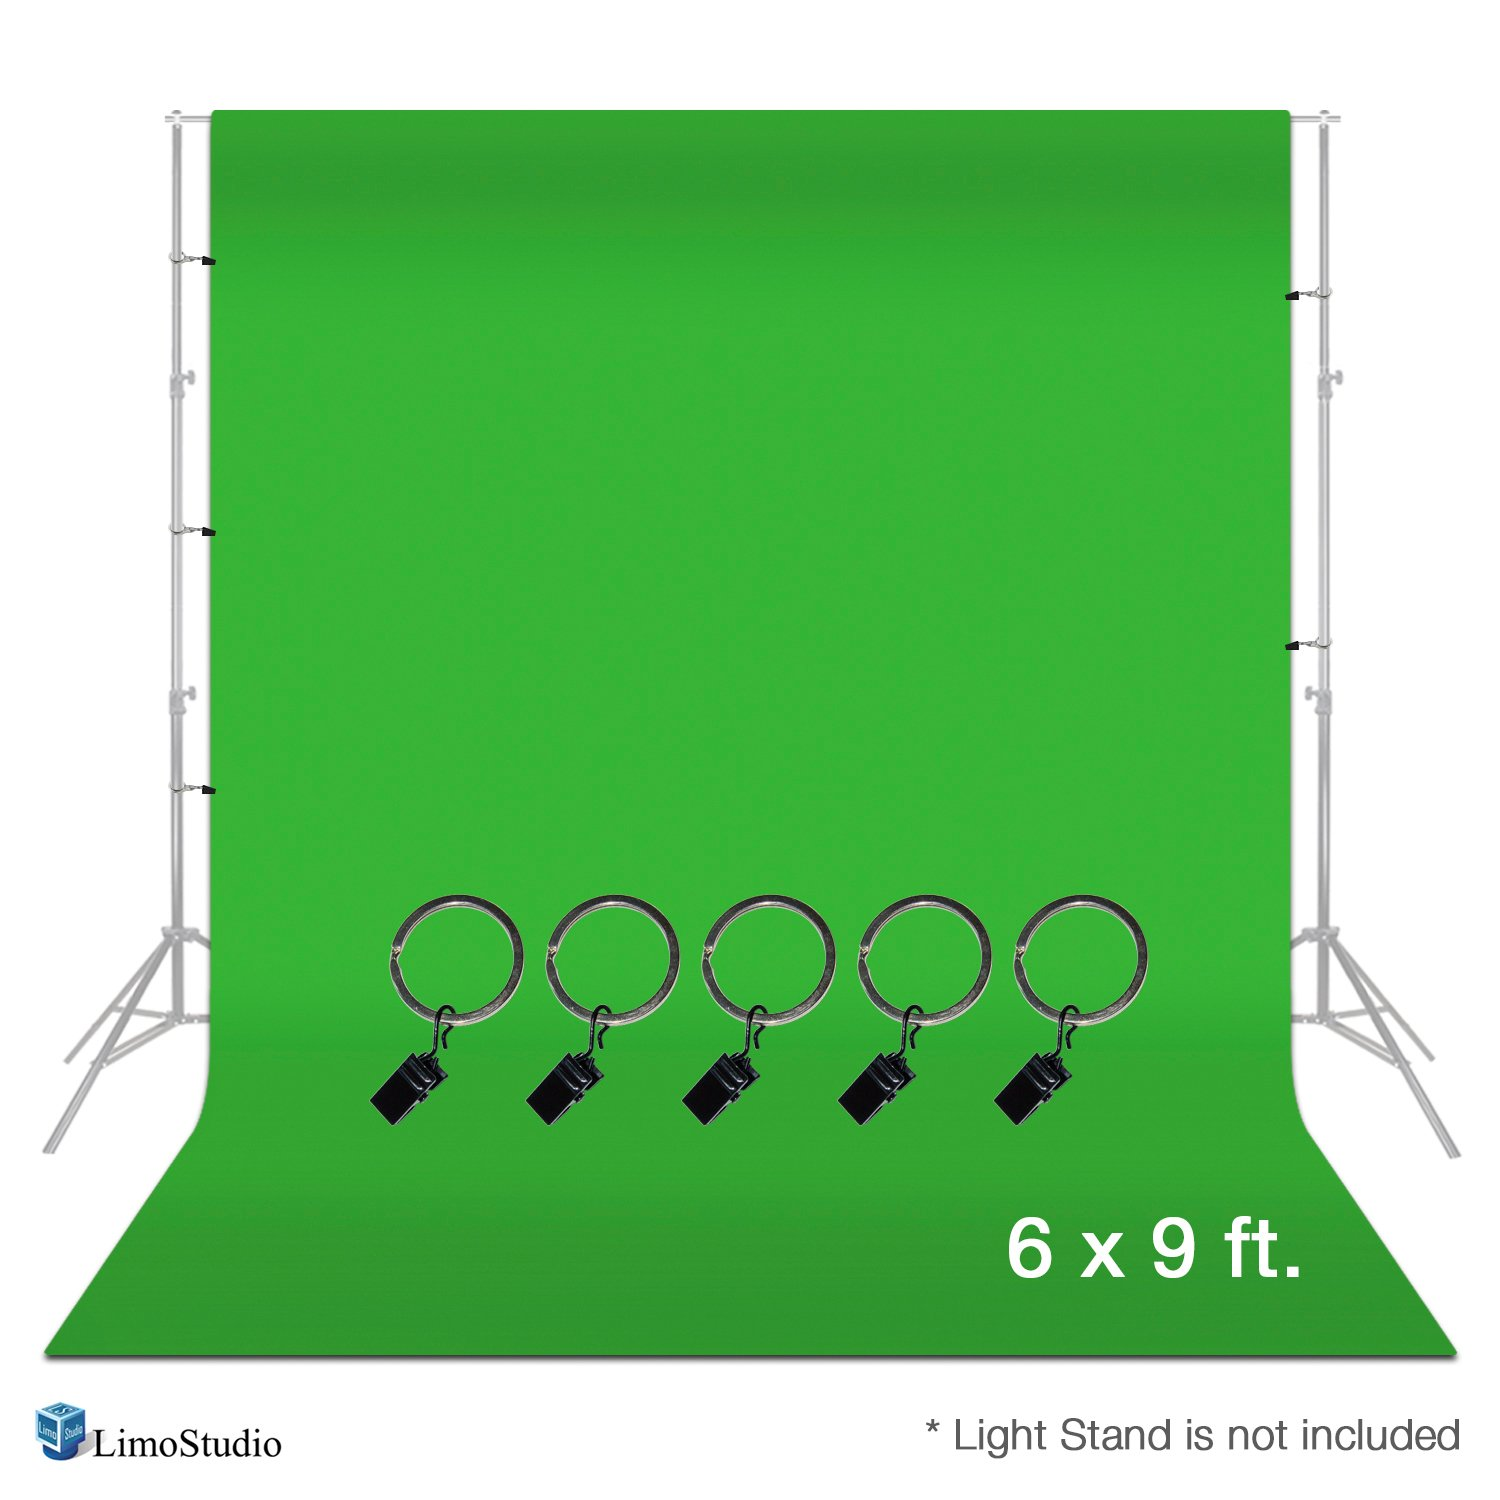 LimoStudio, AGG1338, Photo Video Studio 6 x 9 feet Green Muslin Backdrop Muslin with Backdrop Ring Holder Clip, Backdrop Stands Not Included